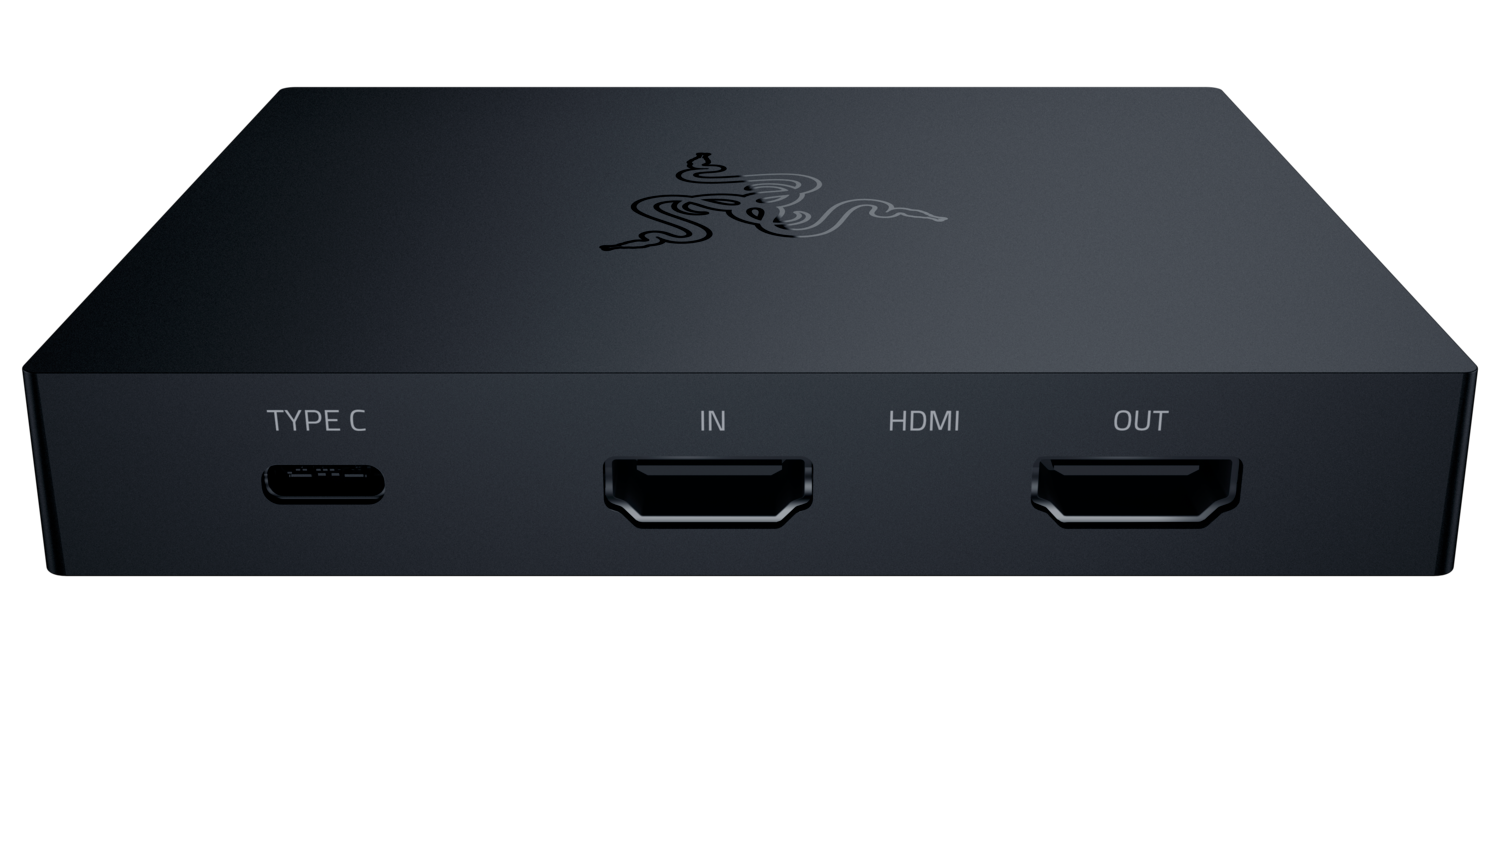 Image 1 : Test du boîtier d'acquisition Razer Ripsaw HD pour le streaming